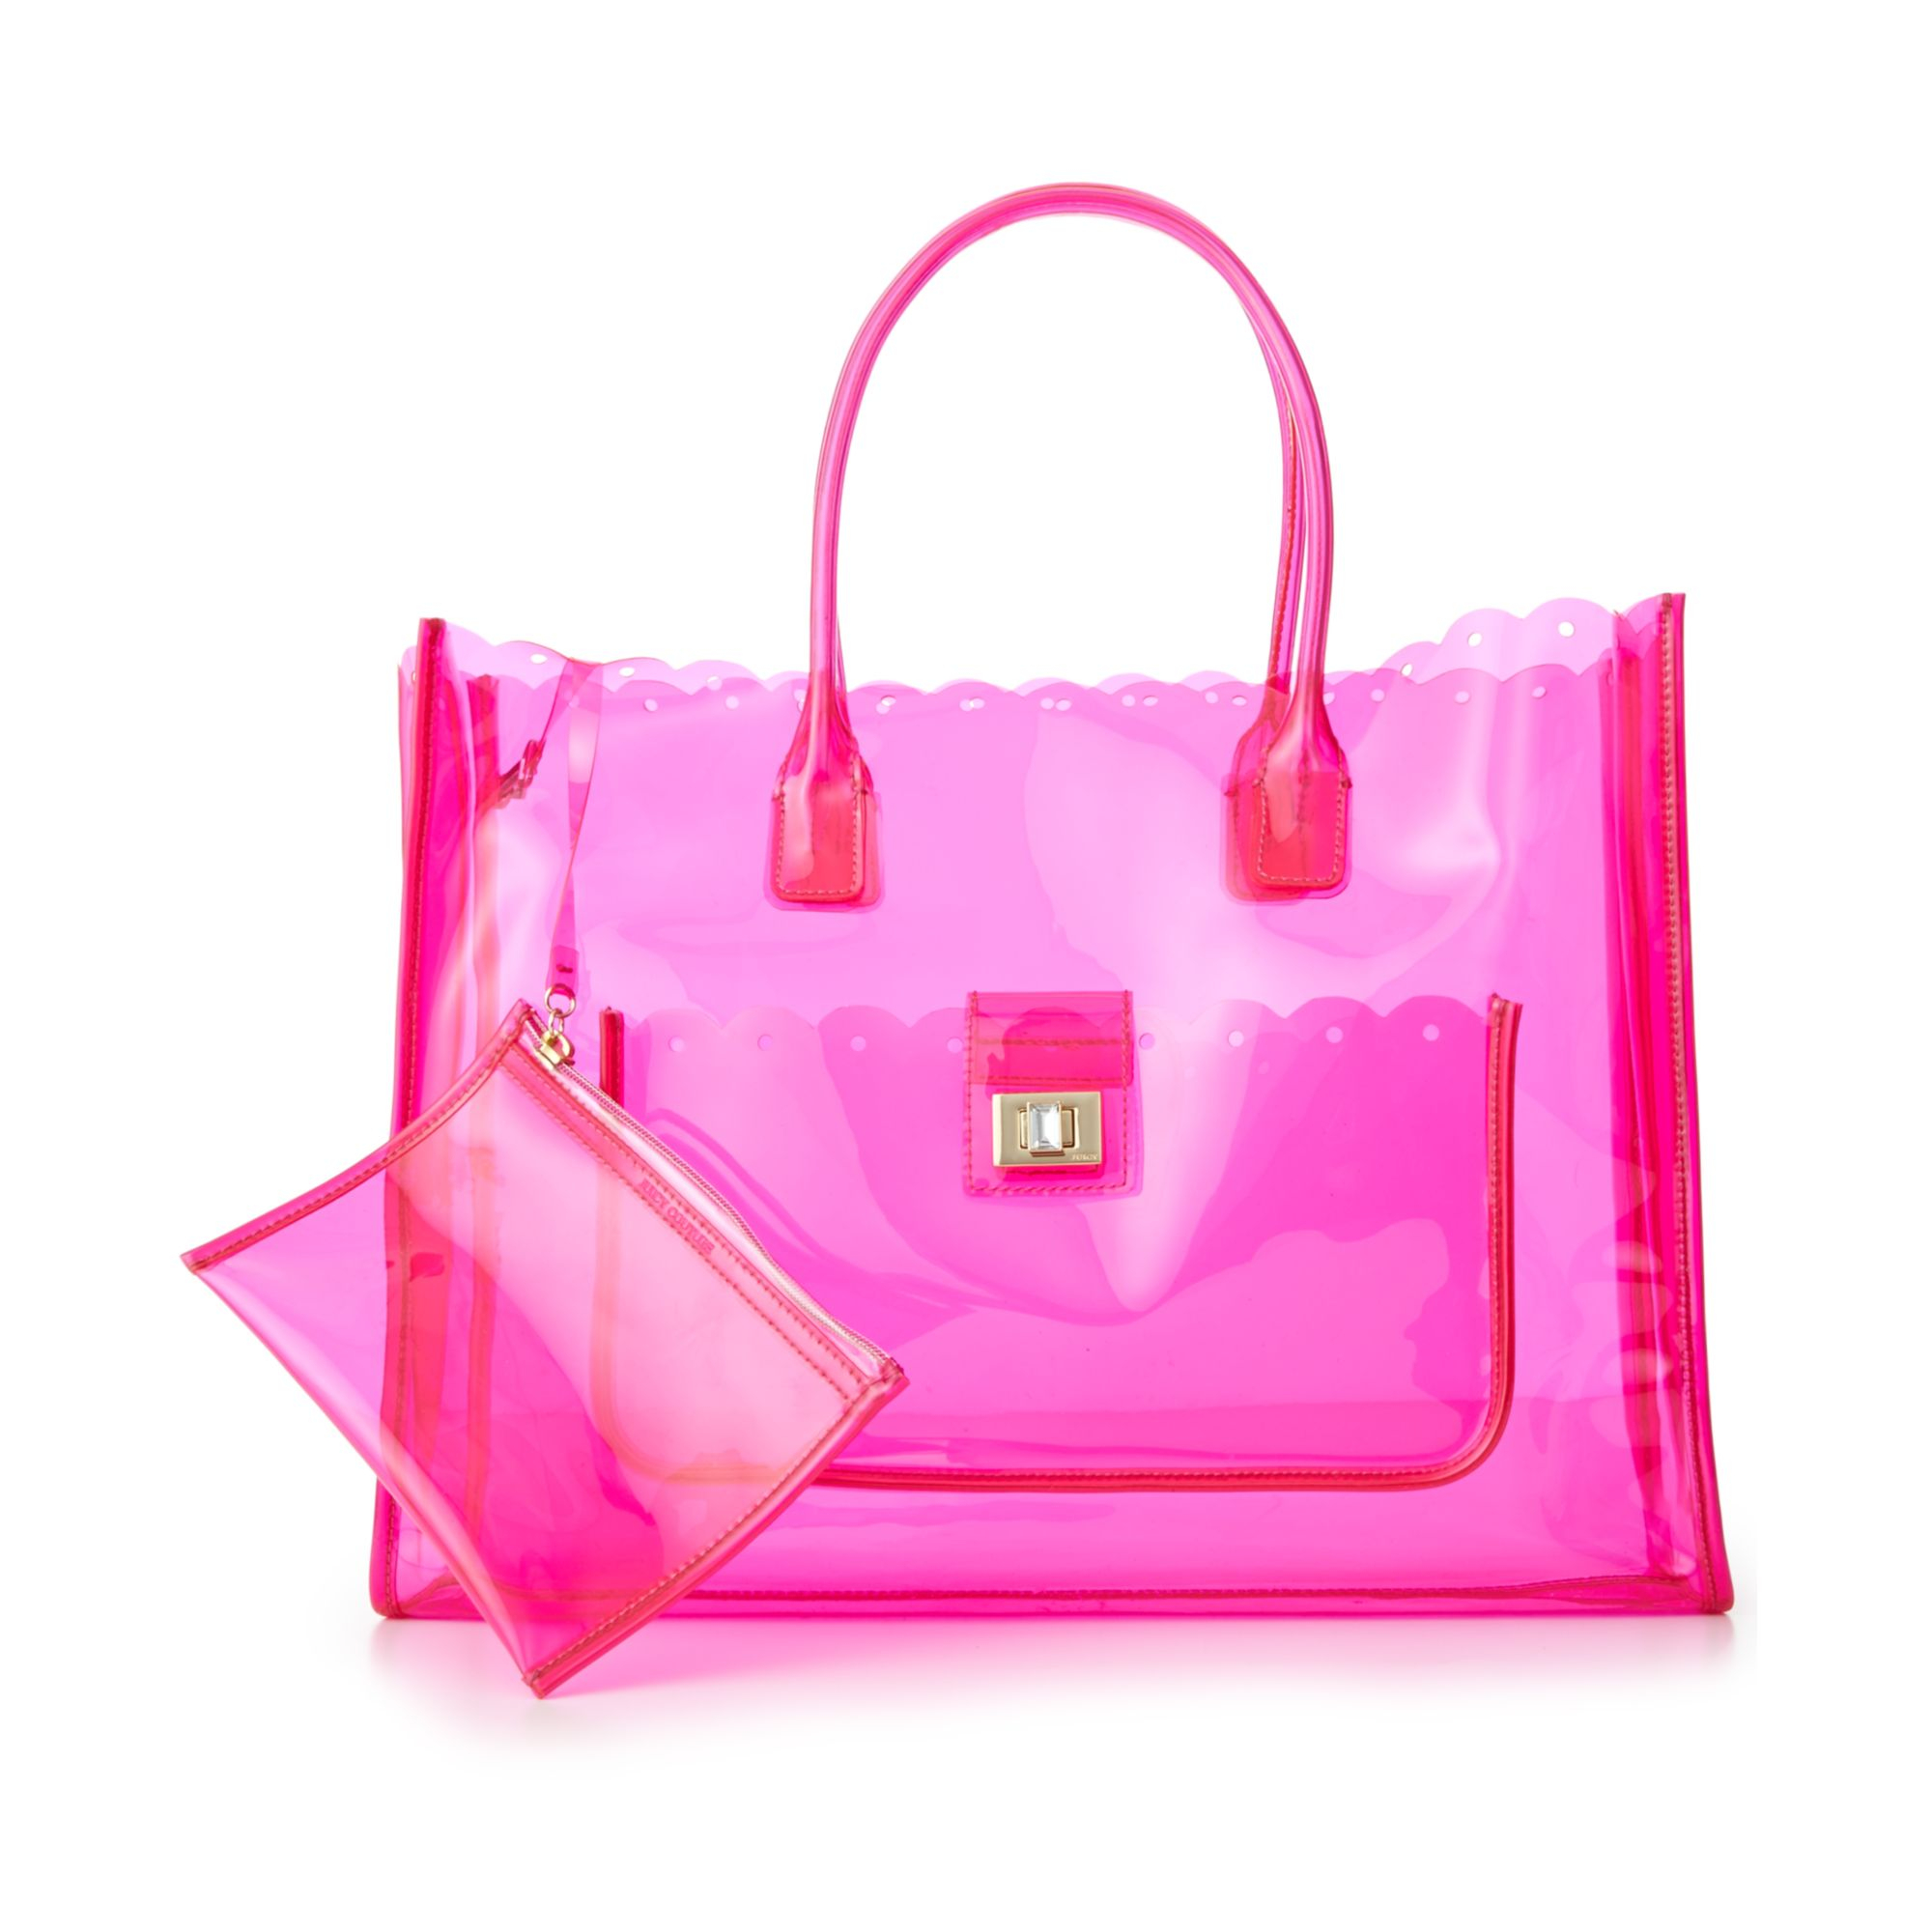 juicy couture silverlake clear beach tote in pink lyst. Black Bedroom Furniture Sets. Home Design Ideas